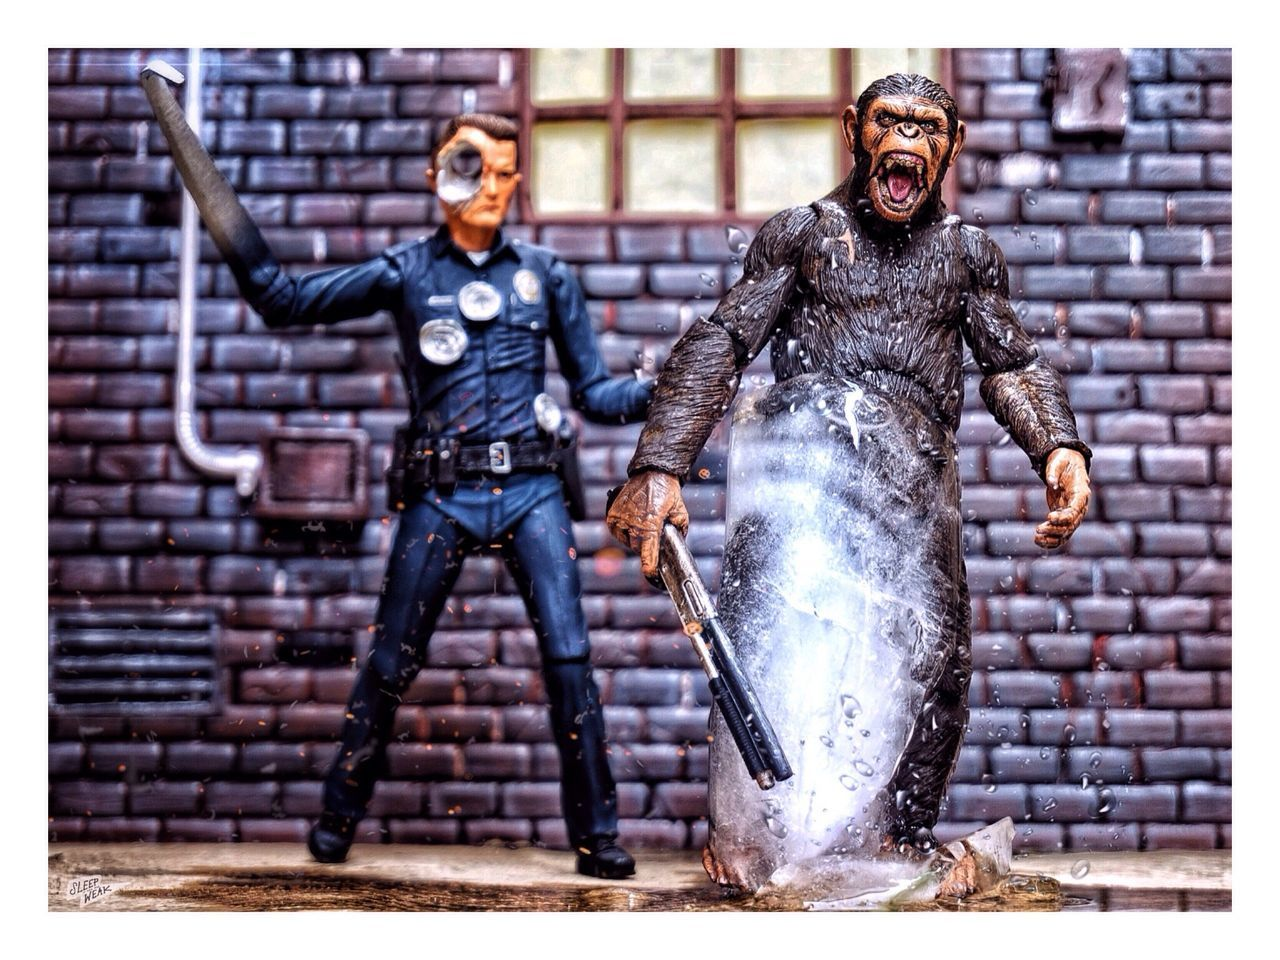 Freeze!! Terminator Planetoftheapes Toysarehellasick Toy Photography Toycommunity Welcomeweekly Eye4photography  EyeEm Best Shots EyeEm Toyphotography Toyphotography